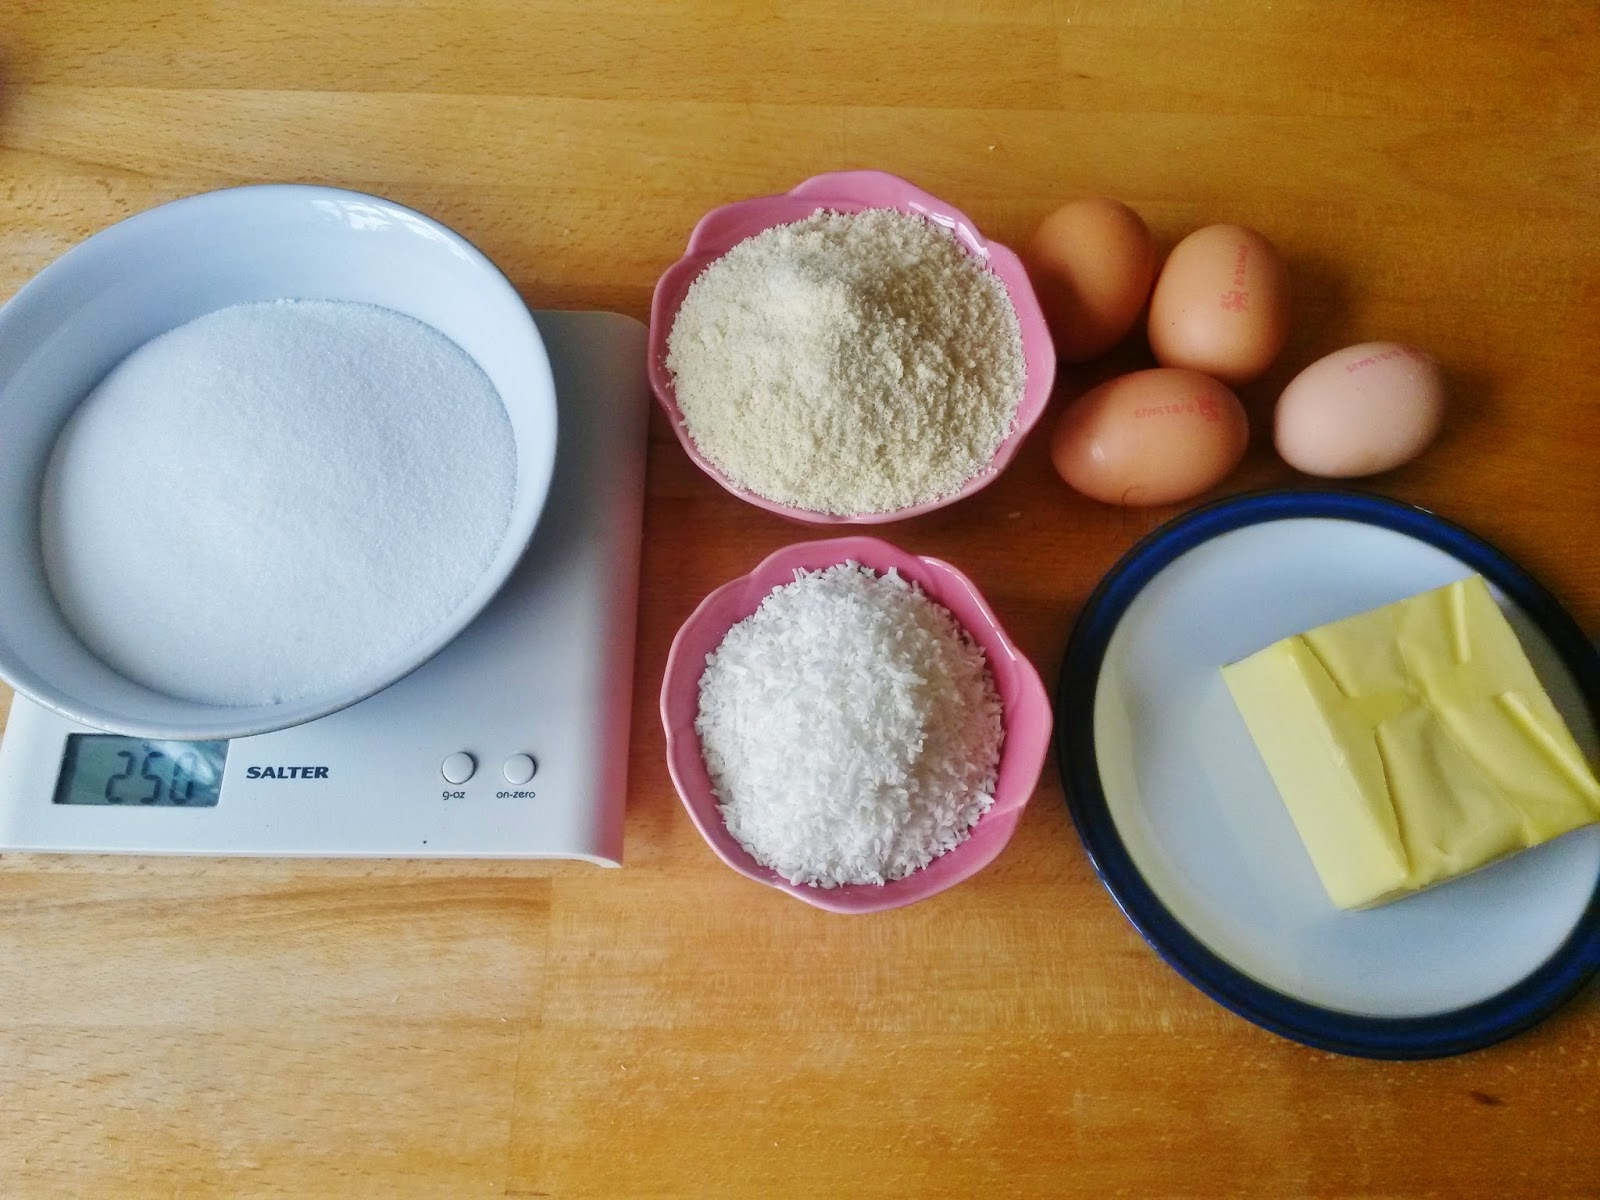 Ingredients for flourless gluten free almond and coconut cake